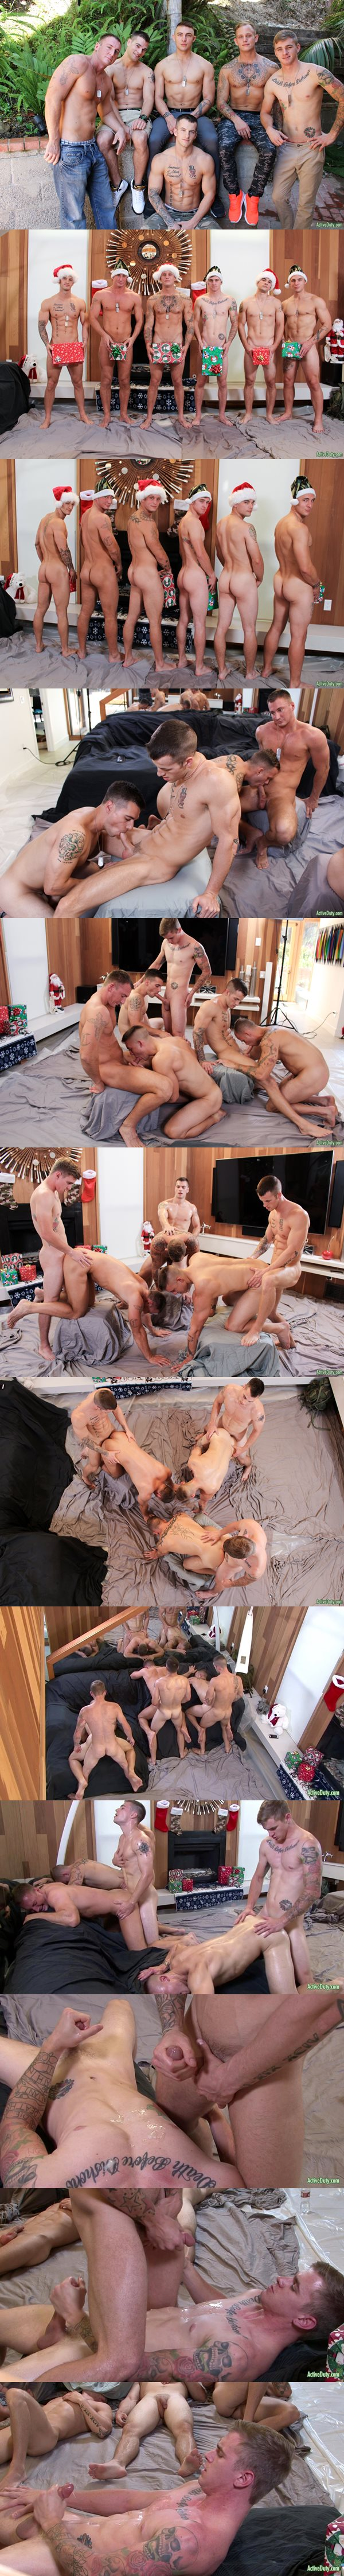 Quentin Gainz, Craig Cameron, Zack Matthews, Ryan Jordan, Princeton Price and Ripley in Christmas 2016 - 6-Man Orgy at Activeduty 02